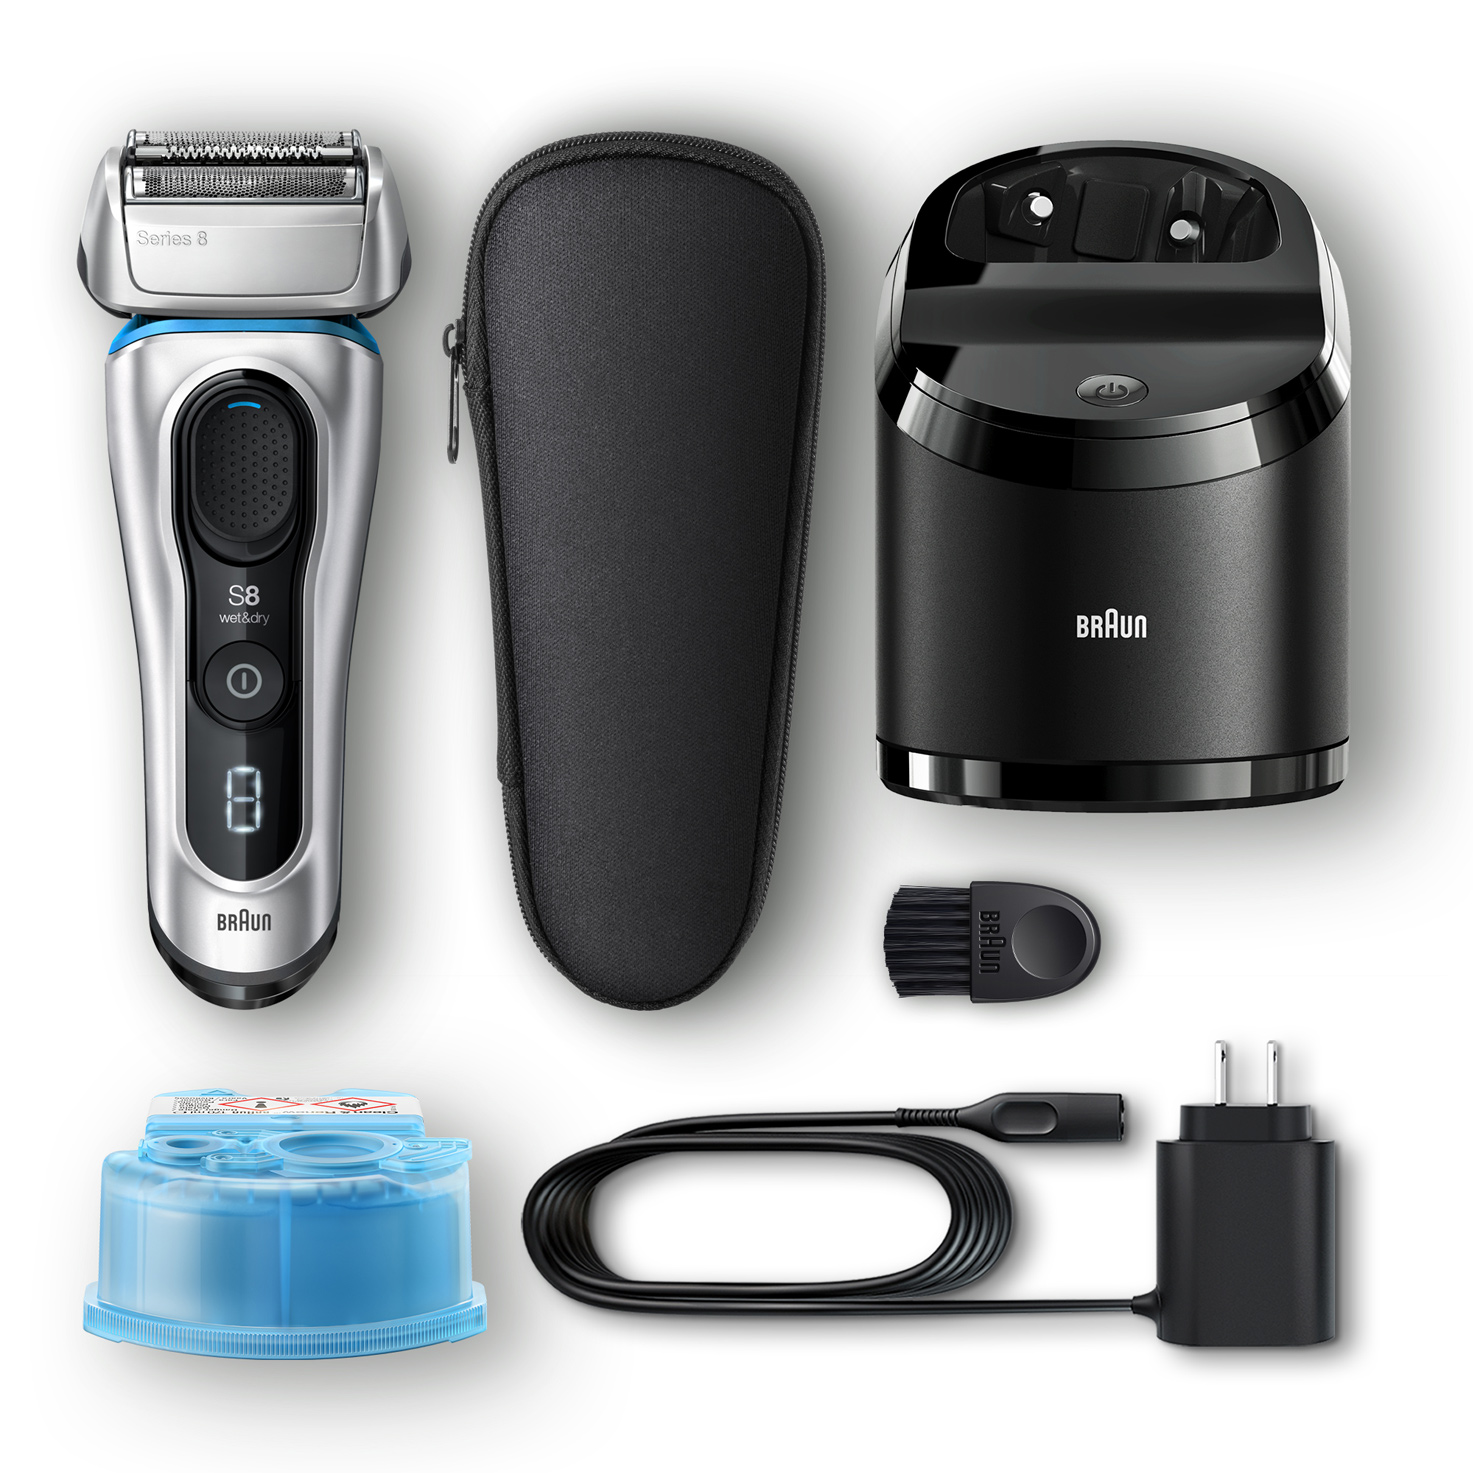 Series 8 8371cc shaver - What´s in the box